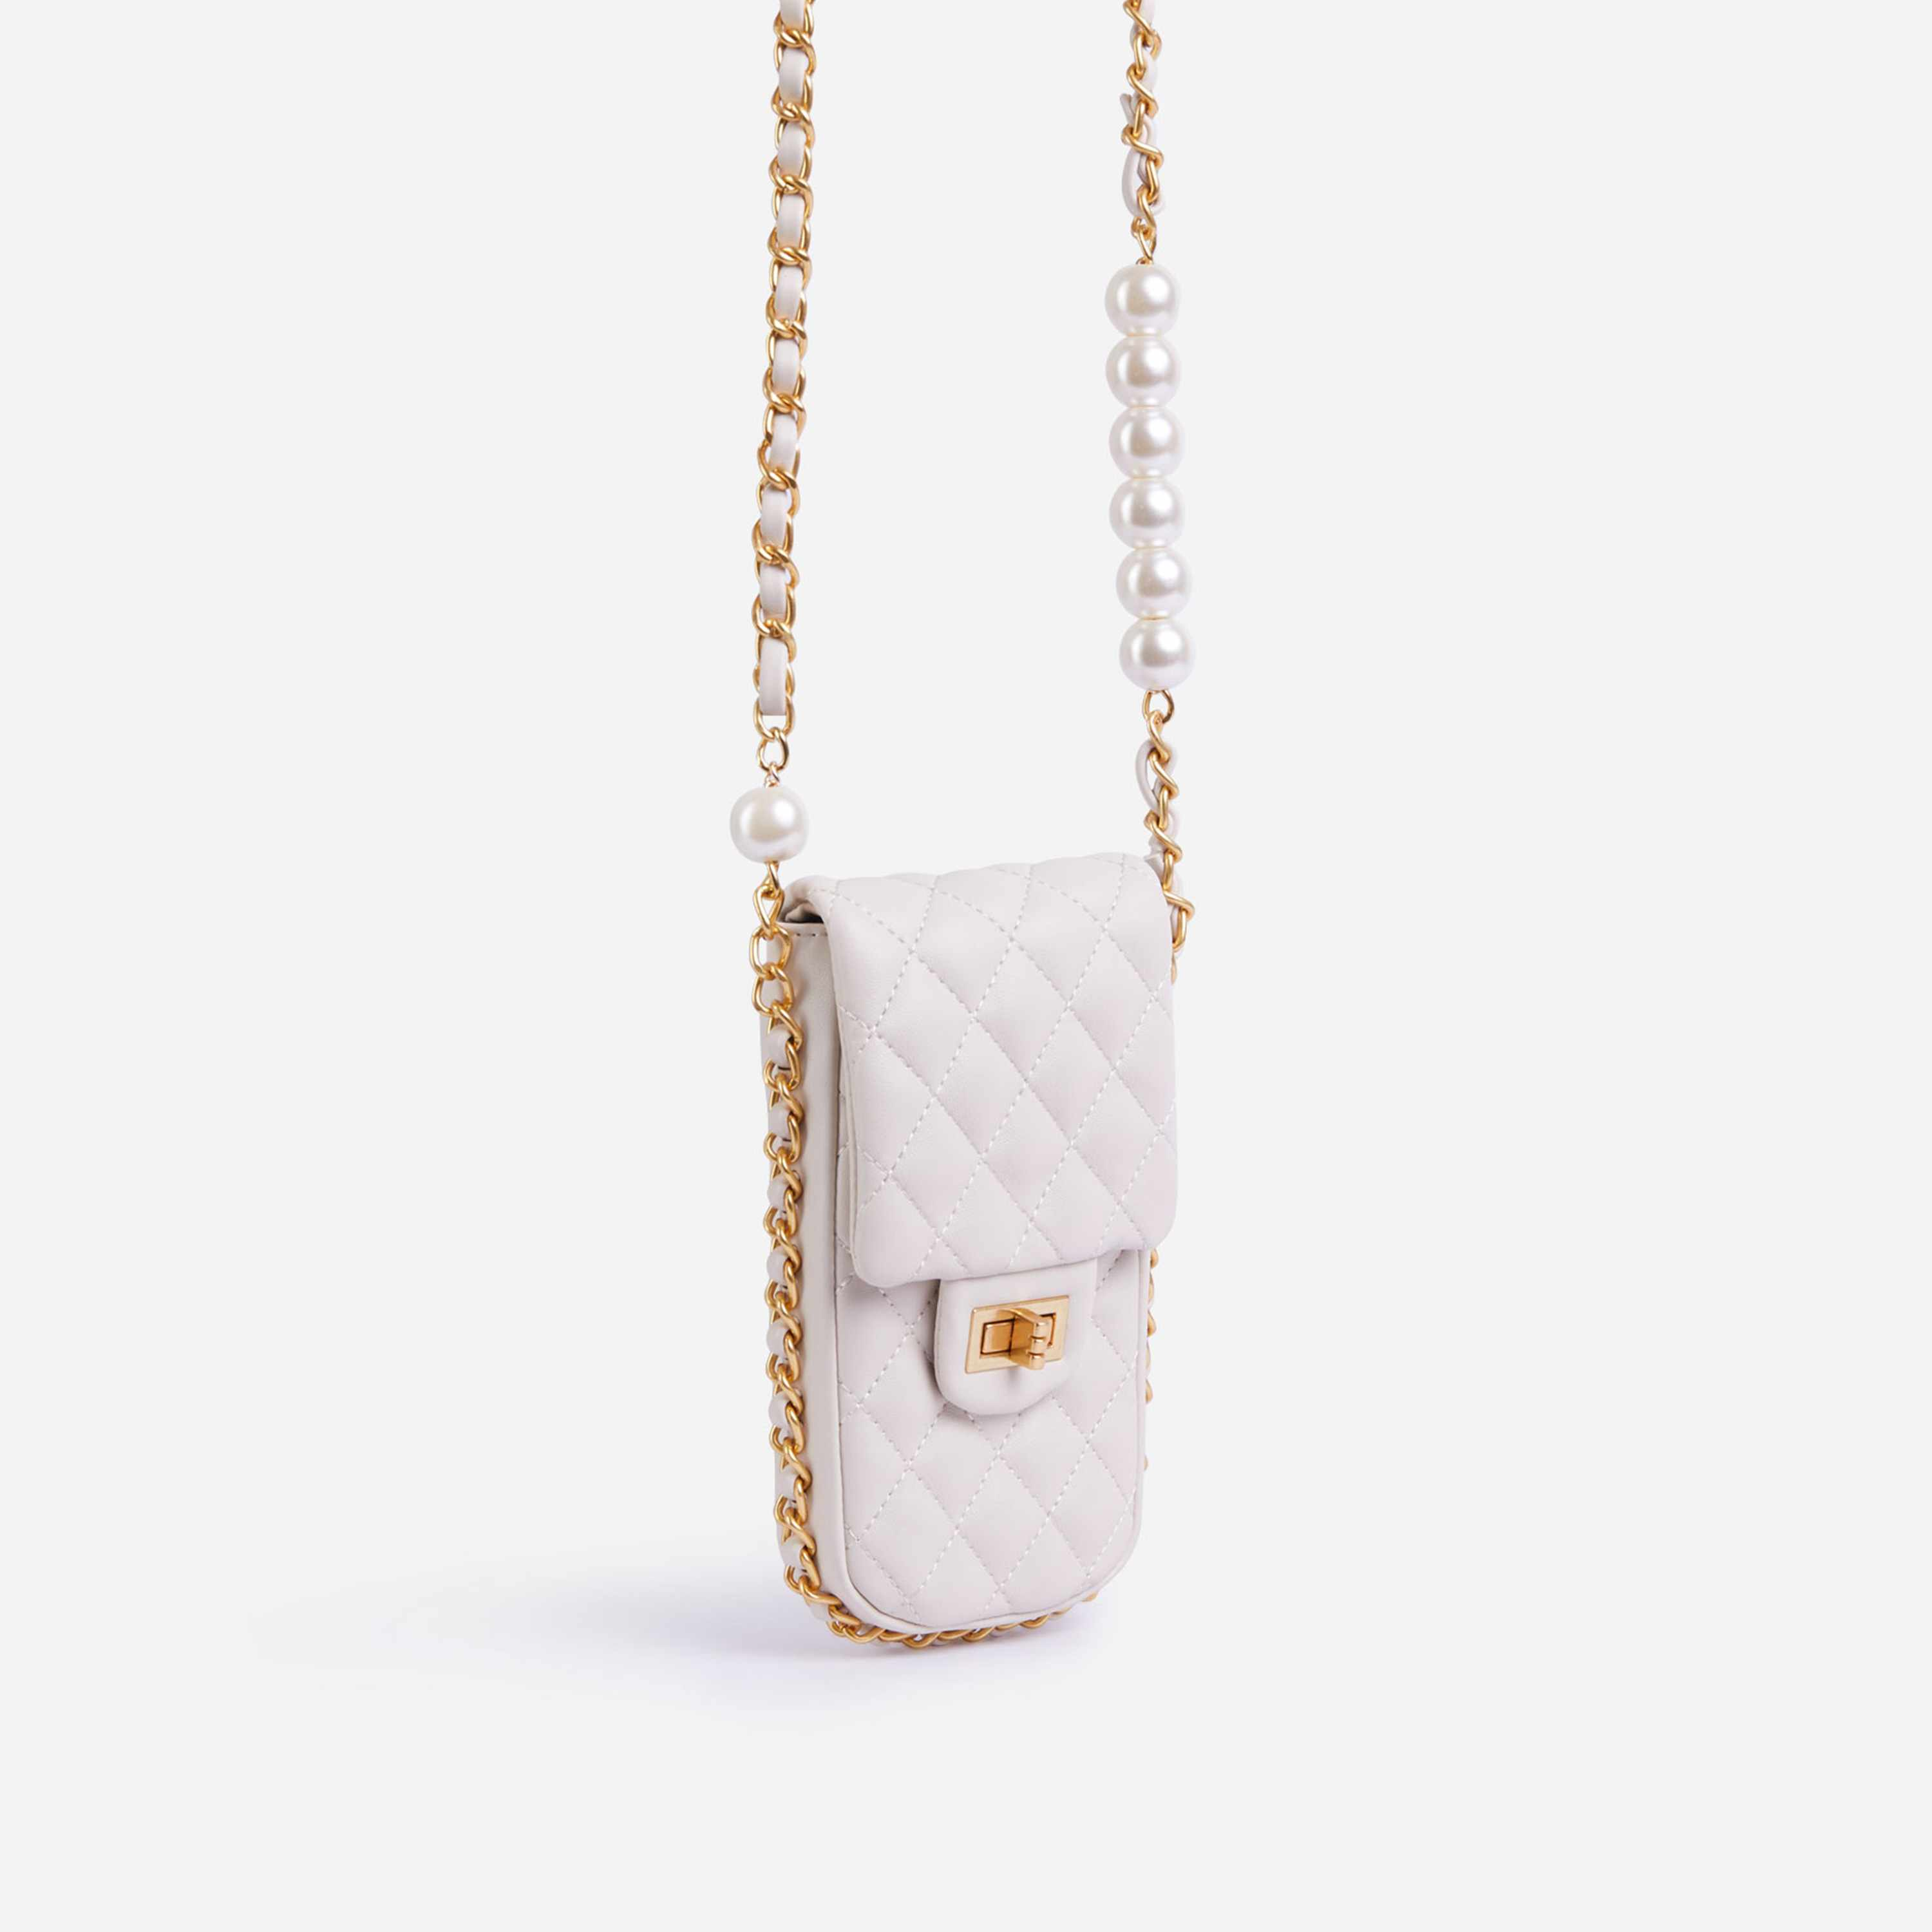 Peaches Quilted Pearl & Chain Detail Cross Body Mini Bag In White Faux Leather